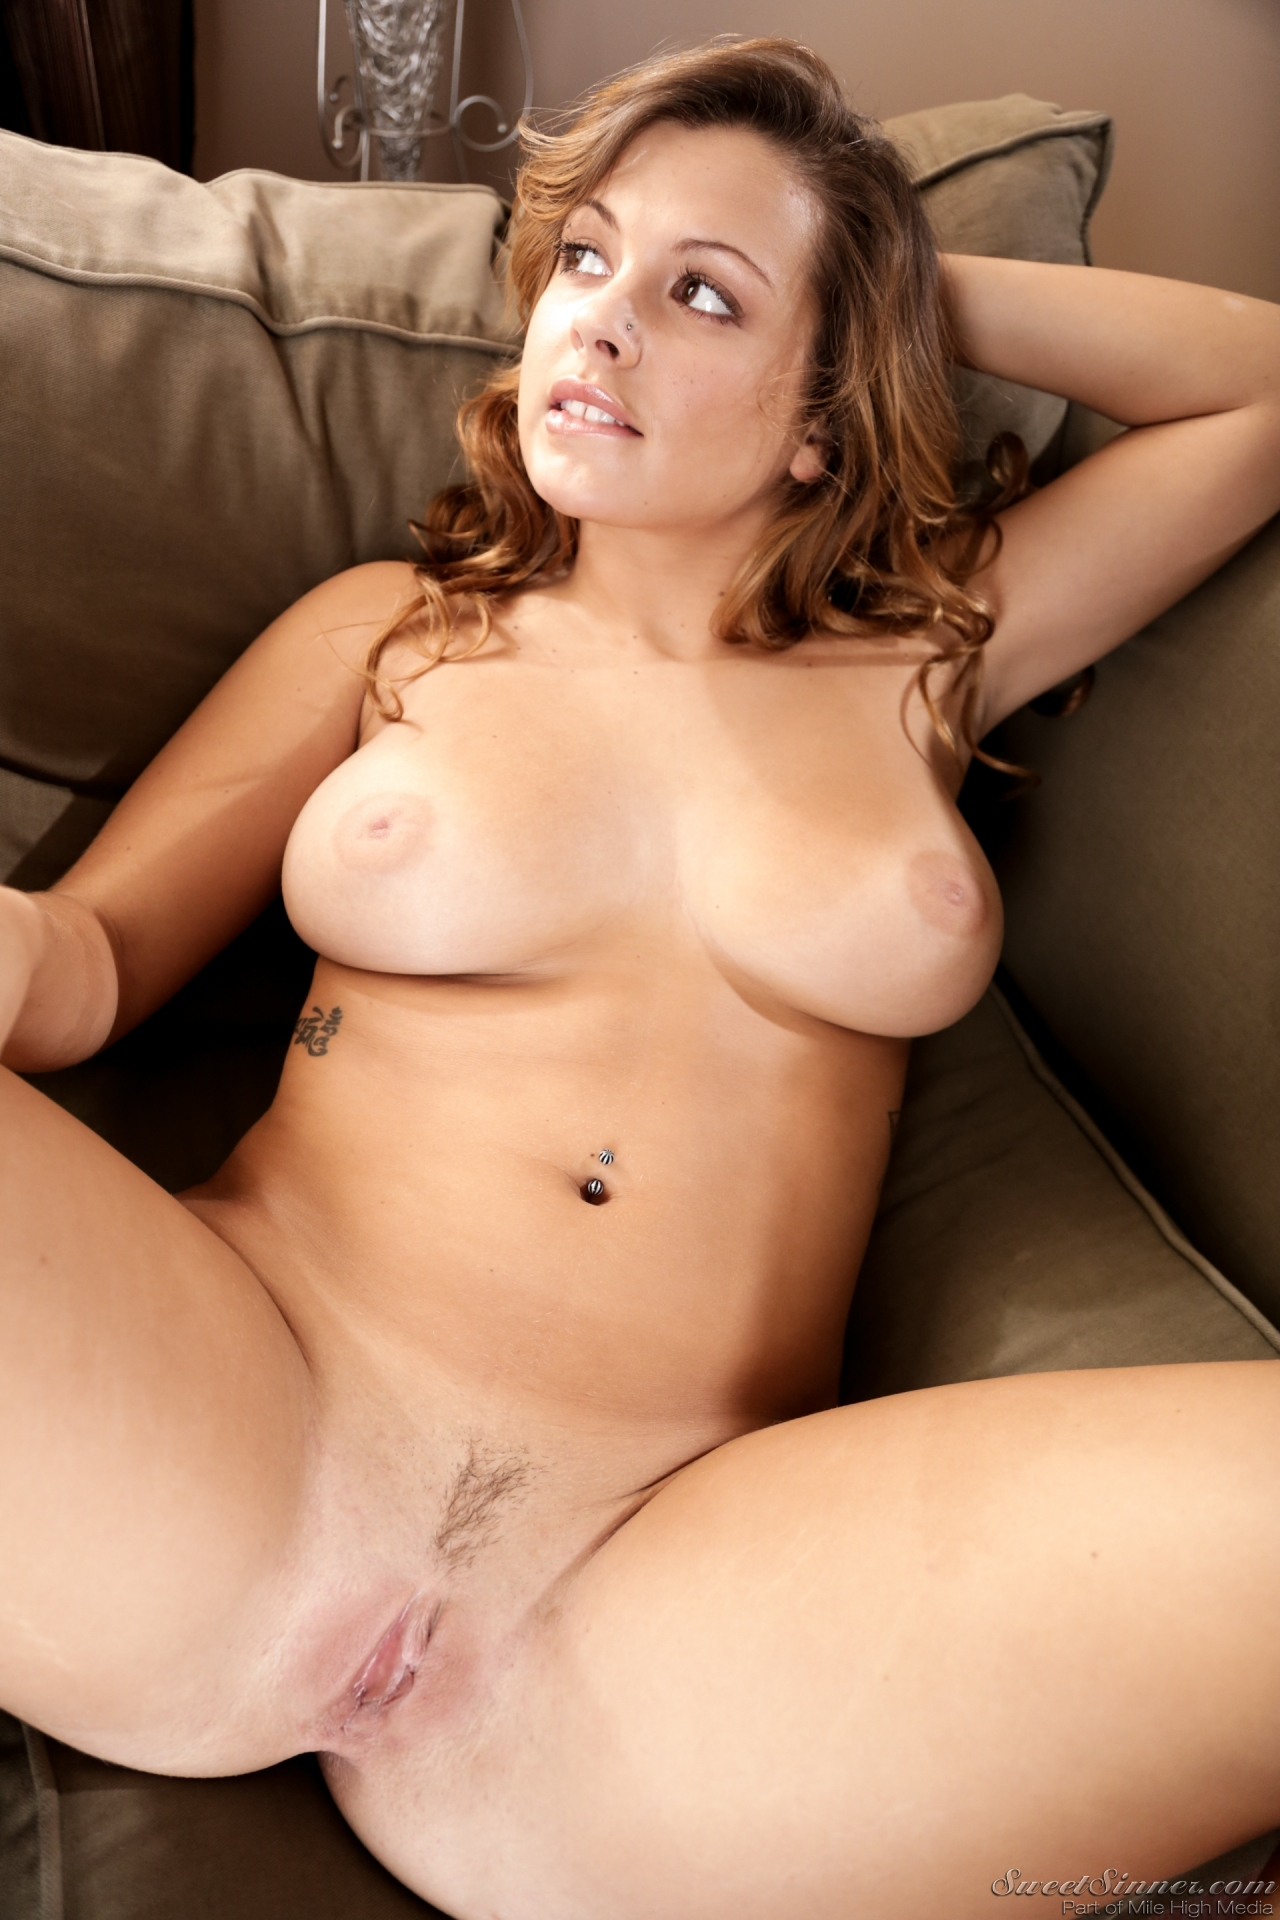 hot pussy on nude beahes